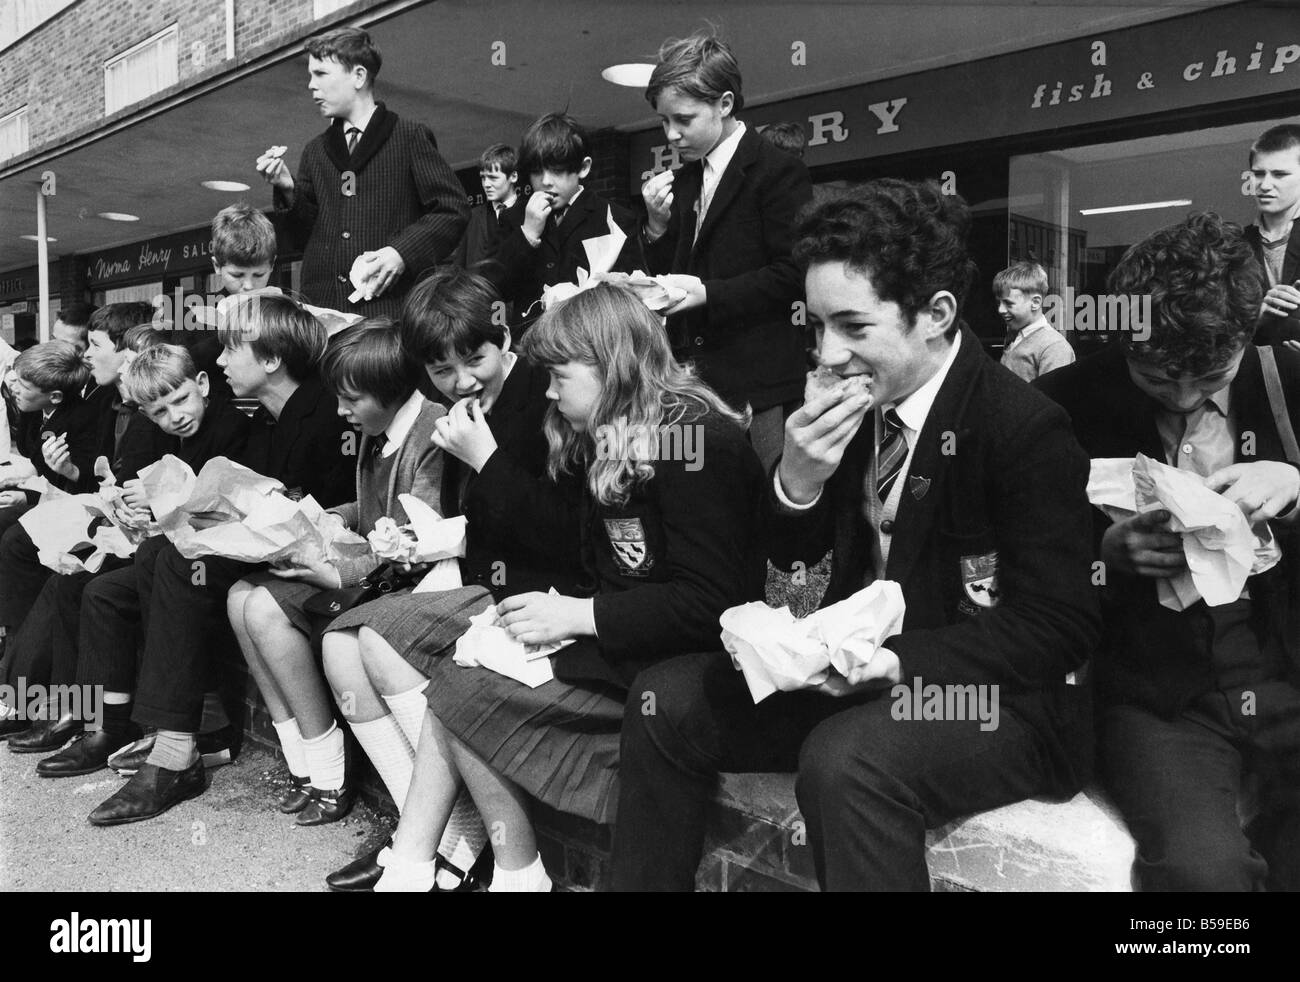 Childrens at St Augustine's secondary school in Hugton, eat sandwiches, fish and chips during school meals disputes - Stock Image